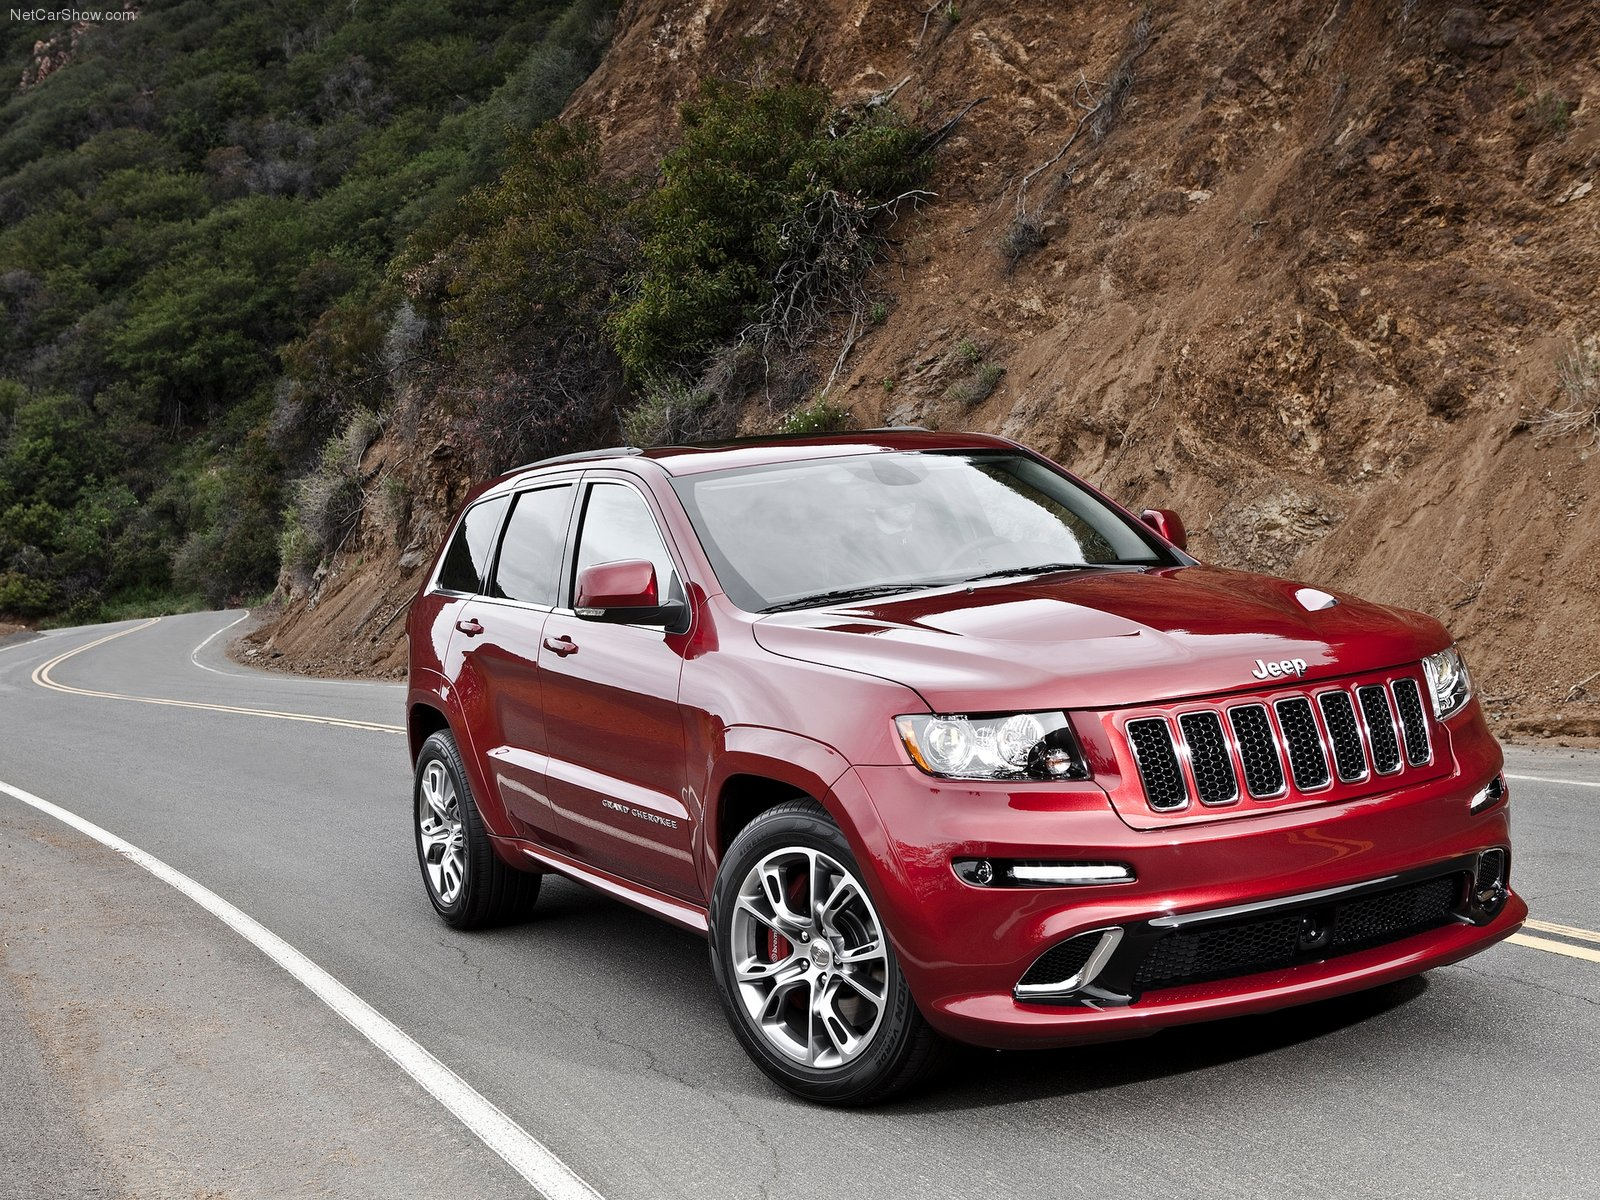 Jeep Grand Cherokee SRT8 photos  PhotoGallery with 42 pics